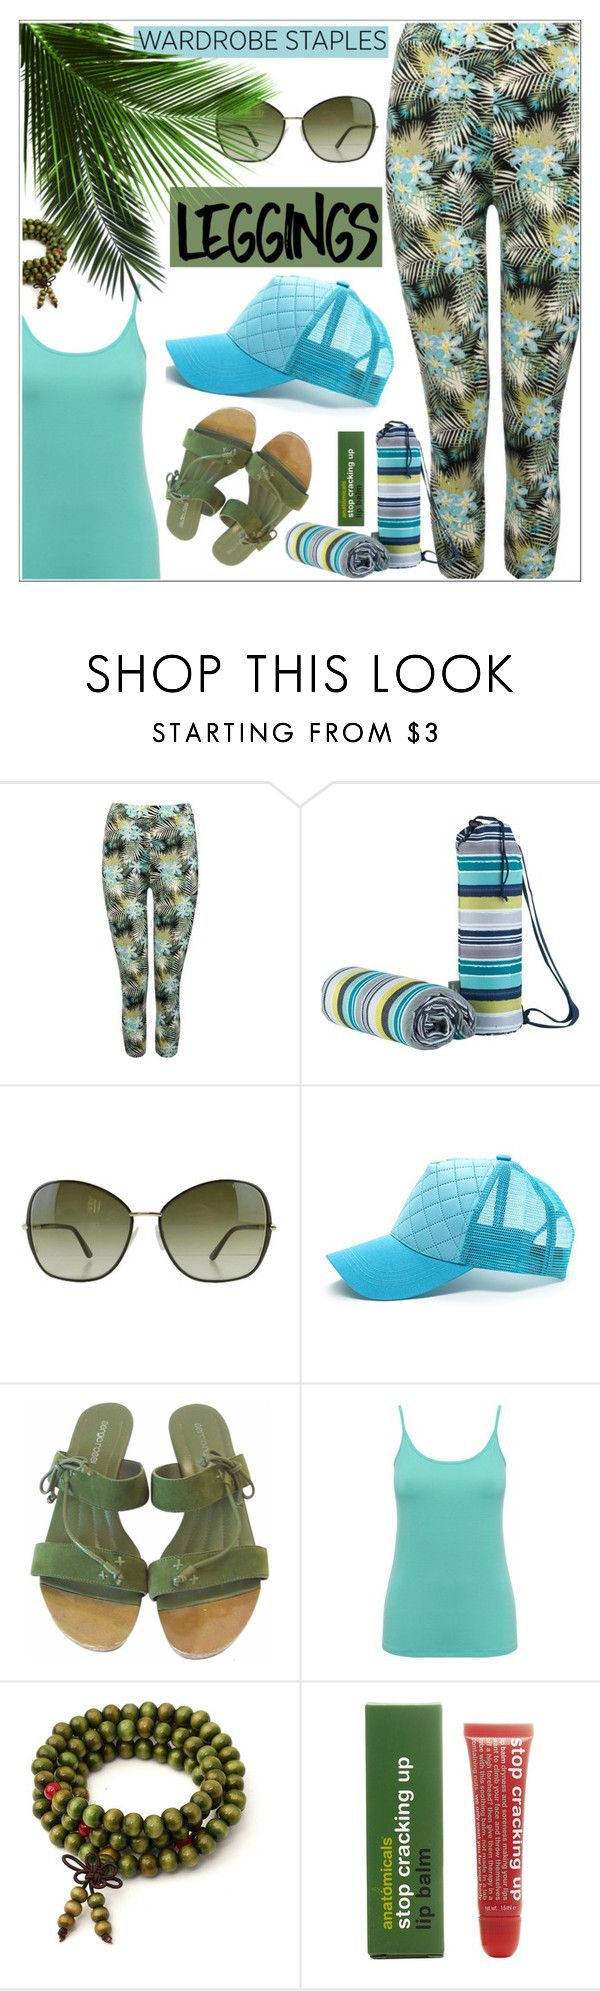 """Wardrobe Staples: Leggings"" by rasa-j ❤ liked on Polyvore featuring M&Co, Tom Ford, Sergio Rossi, Anatomicals, Leggings and WardrobeStaples"